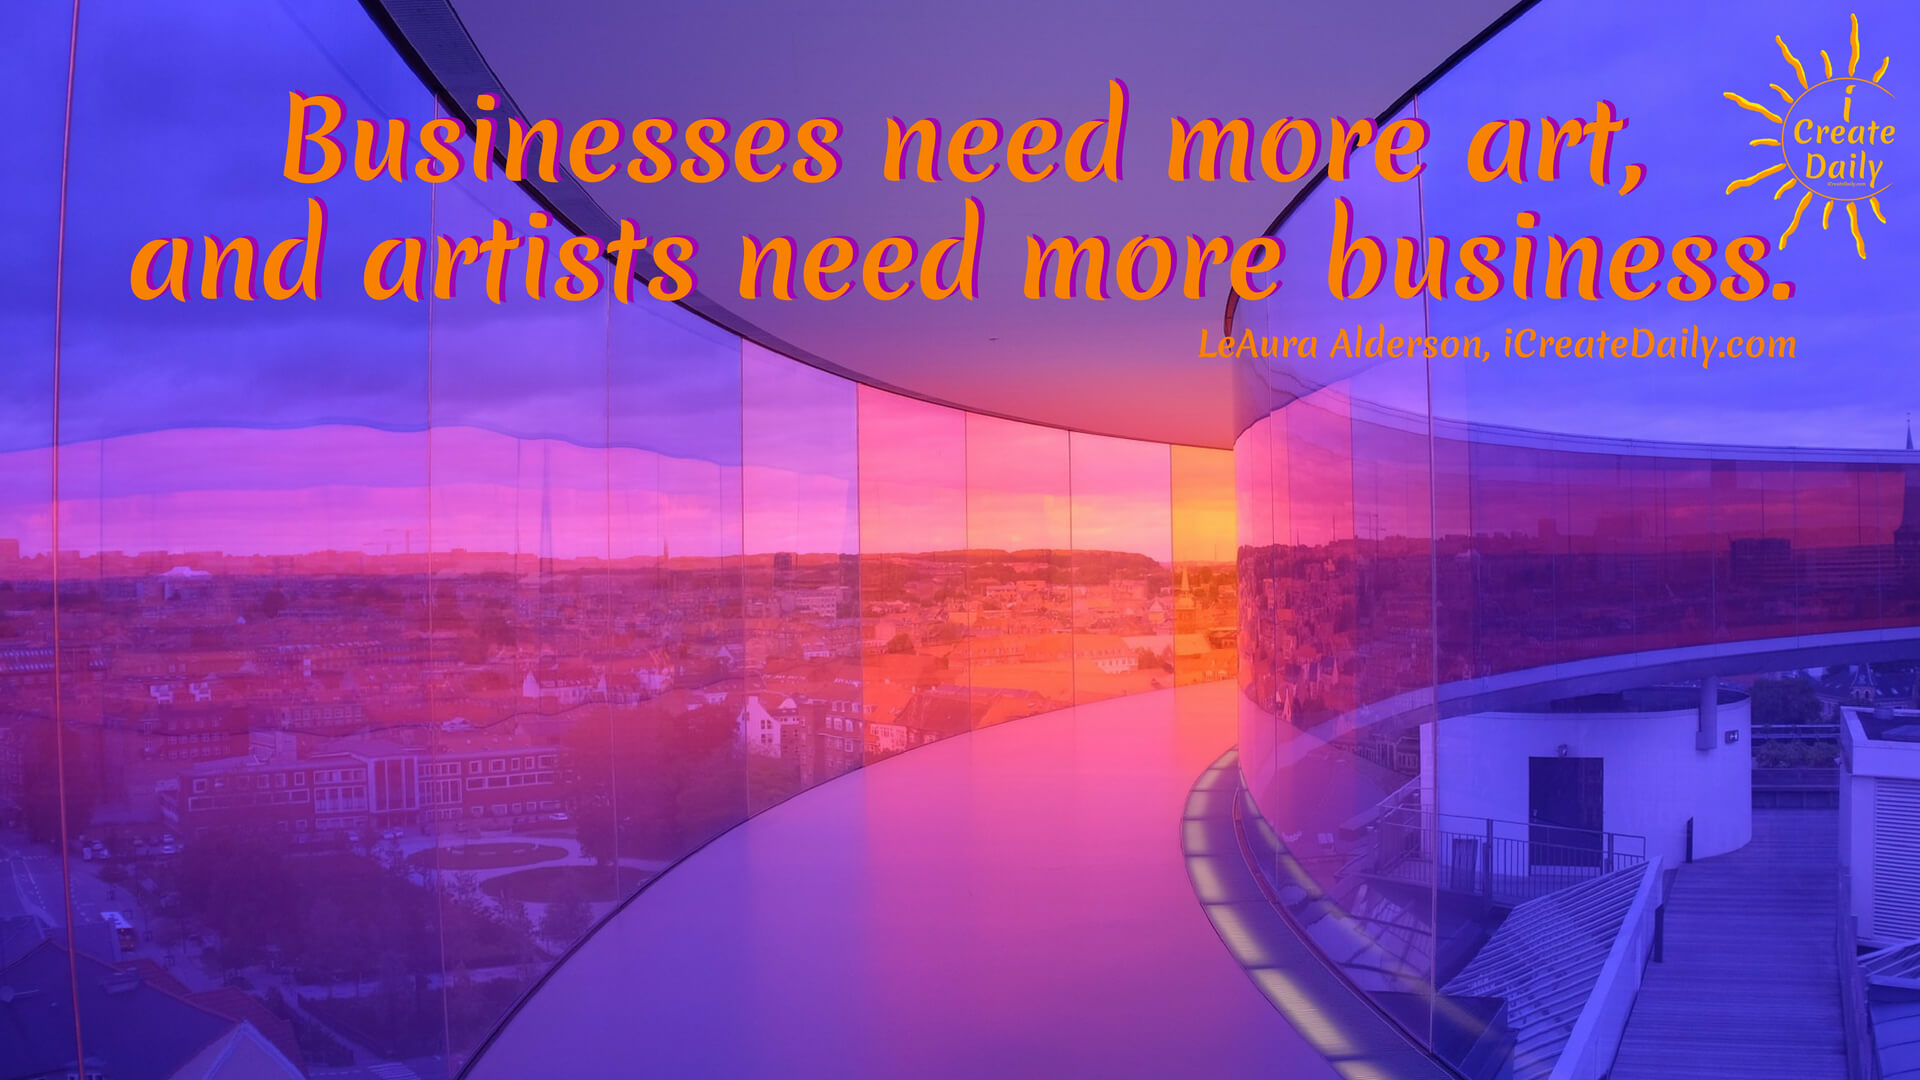 If you're an entrepreneur, you may not like marketing. If you're an artist, you may not like business, and in particular, most artist entrepreneurs hate sales. We get it. #BeenThereDoneThat. But if you apply creative branding to your business, with the eye of the artist, that reframing can make all the difference to your success. #success #business #art #creative